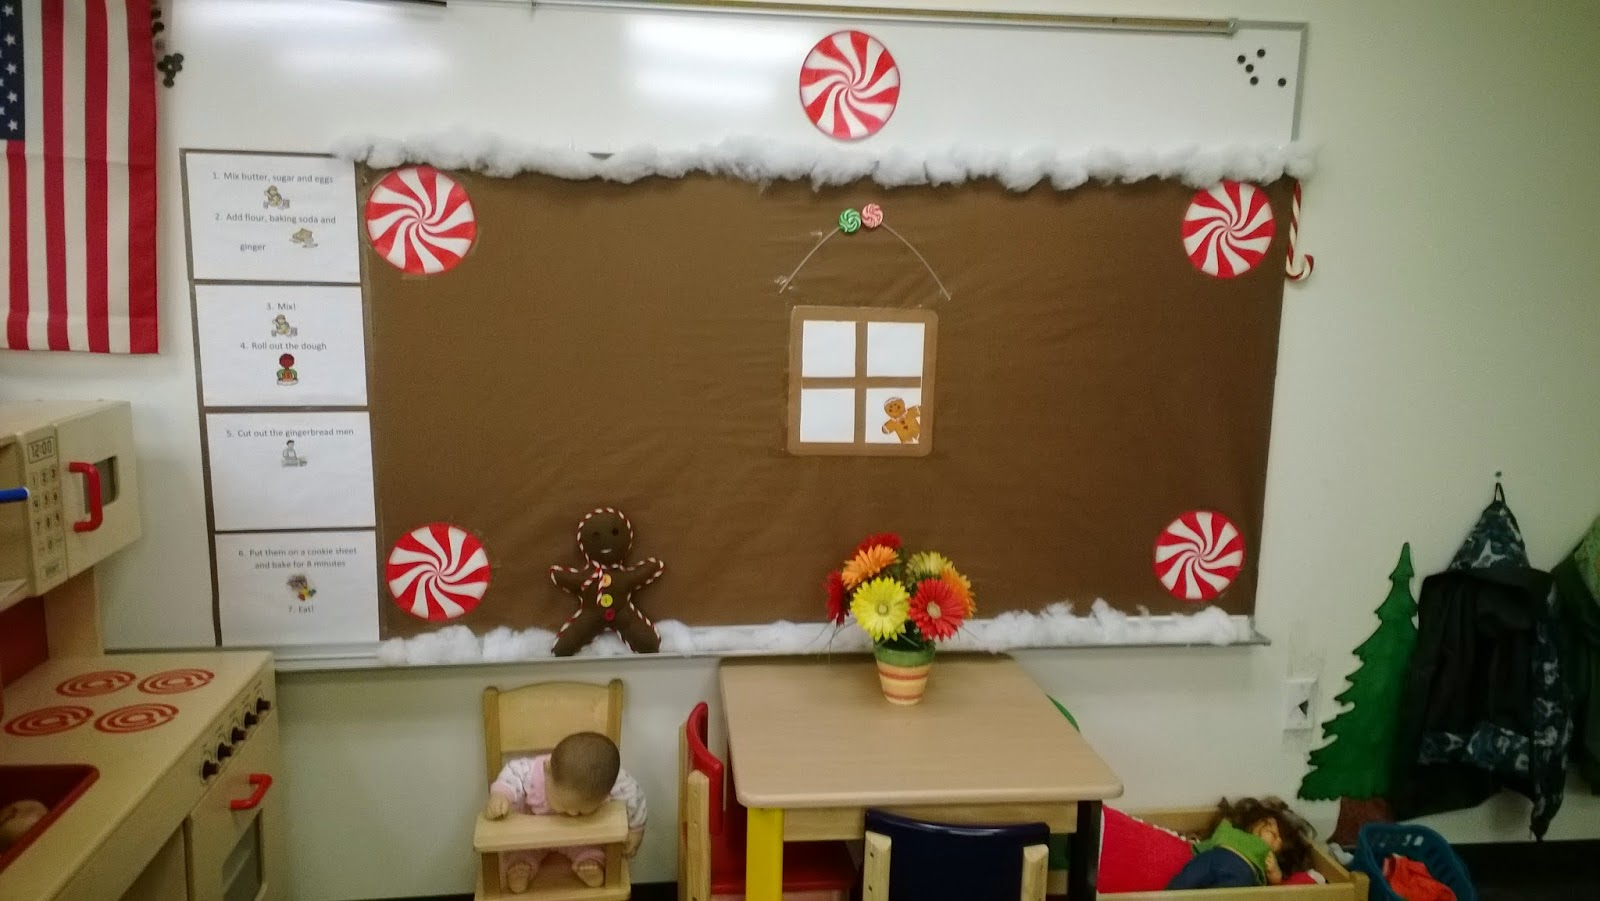 You Can See The Gingerbread Man Doll I Sewed For The Kids To Play Pretend  With. On The Left Side Of The Bulletin Board Are Recipe Cards For Making ...